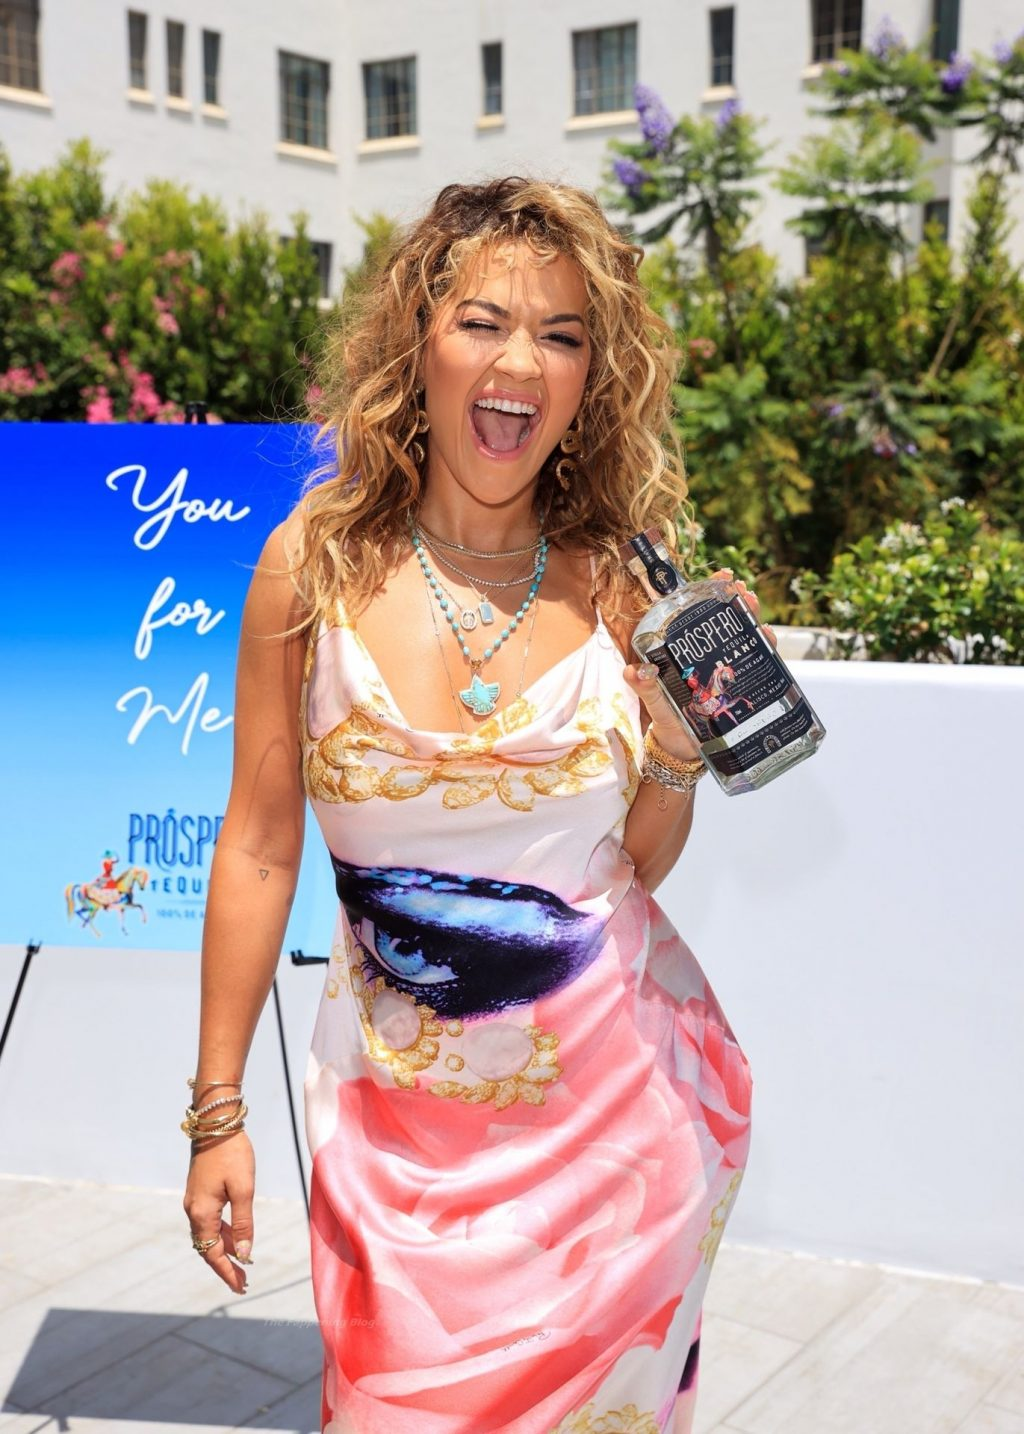 Rita Ora Throws an Epic Star Studded Prospero Tequila 4th of July Barbecue Party (21 Photos)